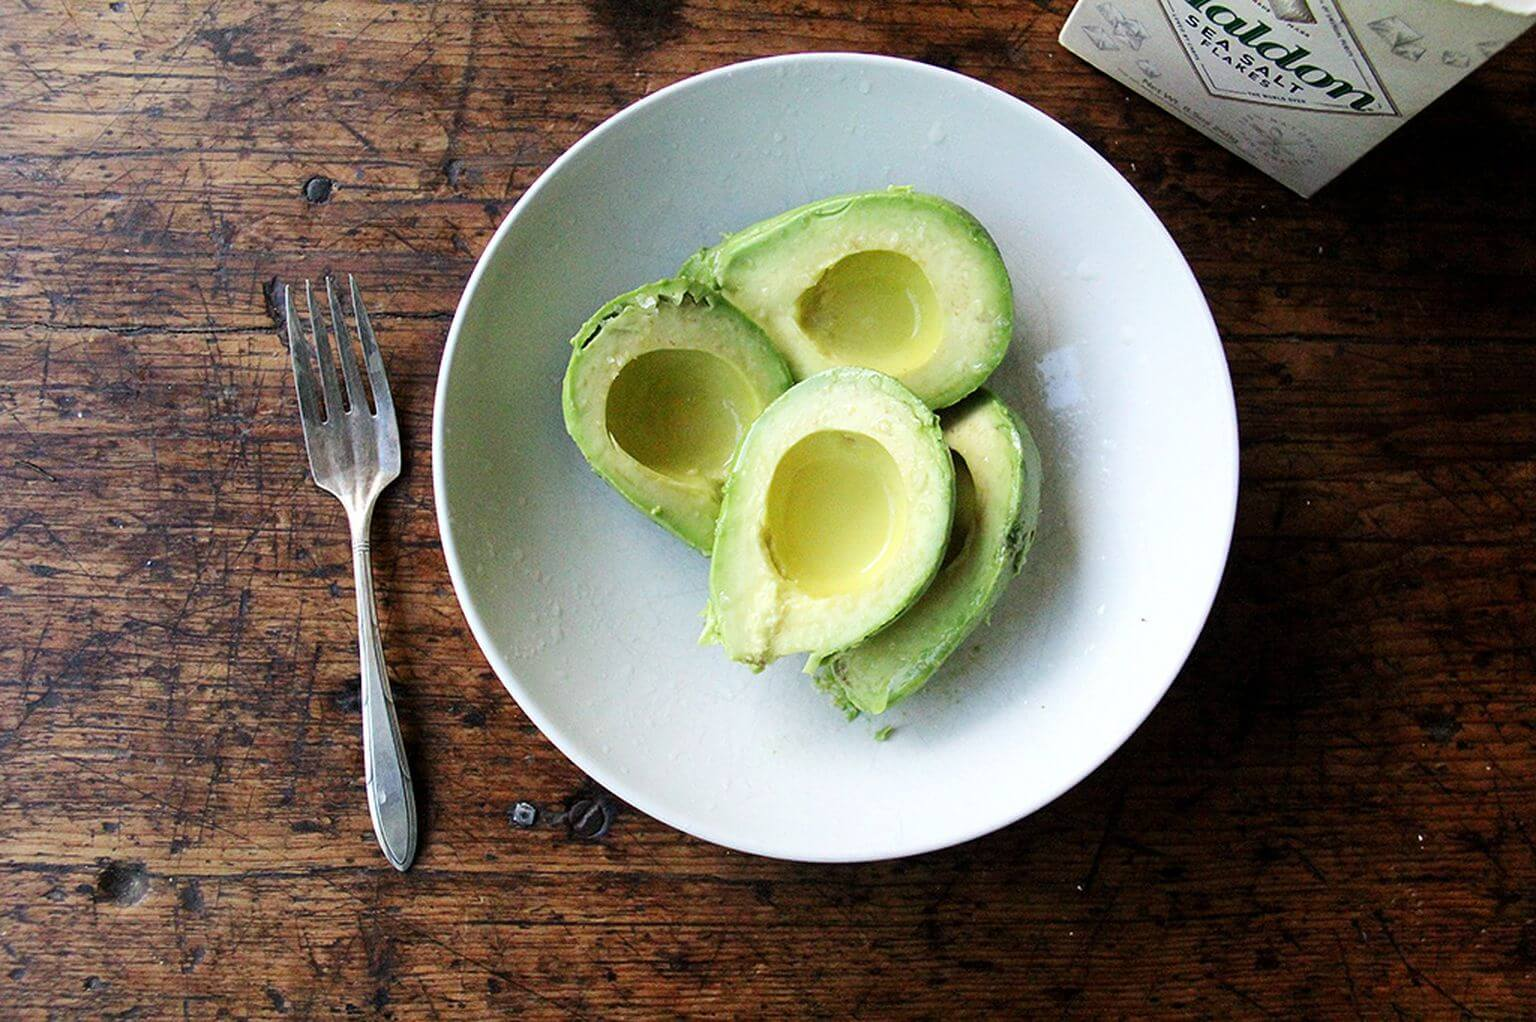 A bowl of two avocados.